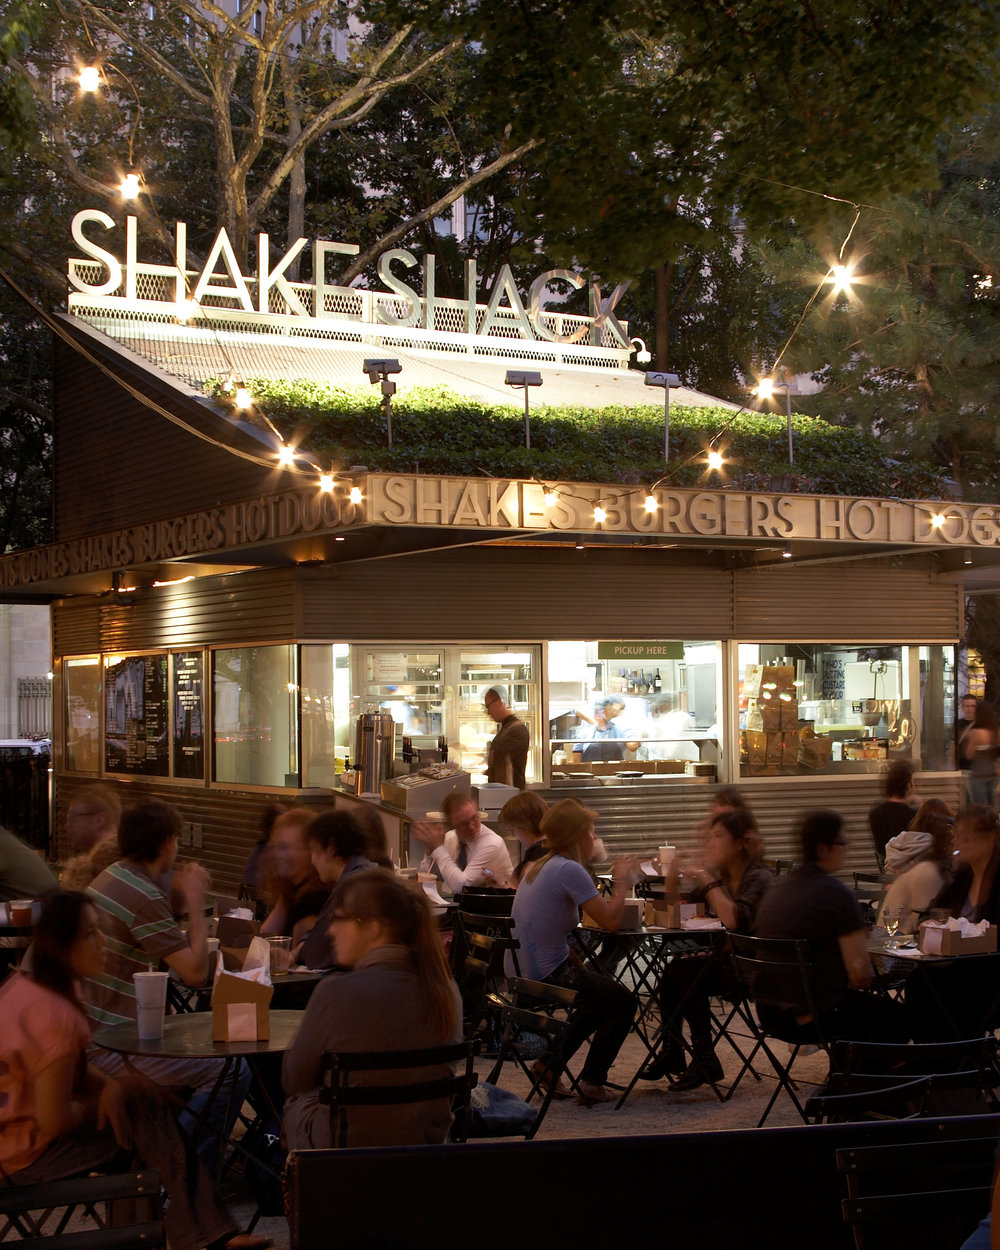 Madison Square Park Shake Shack |  William Brinson